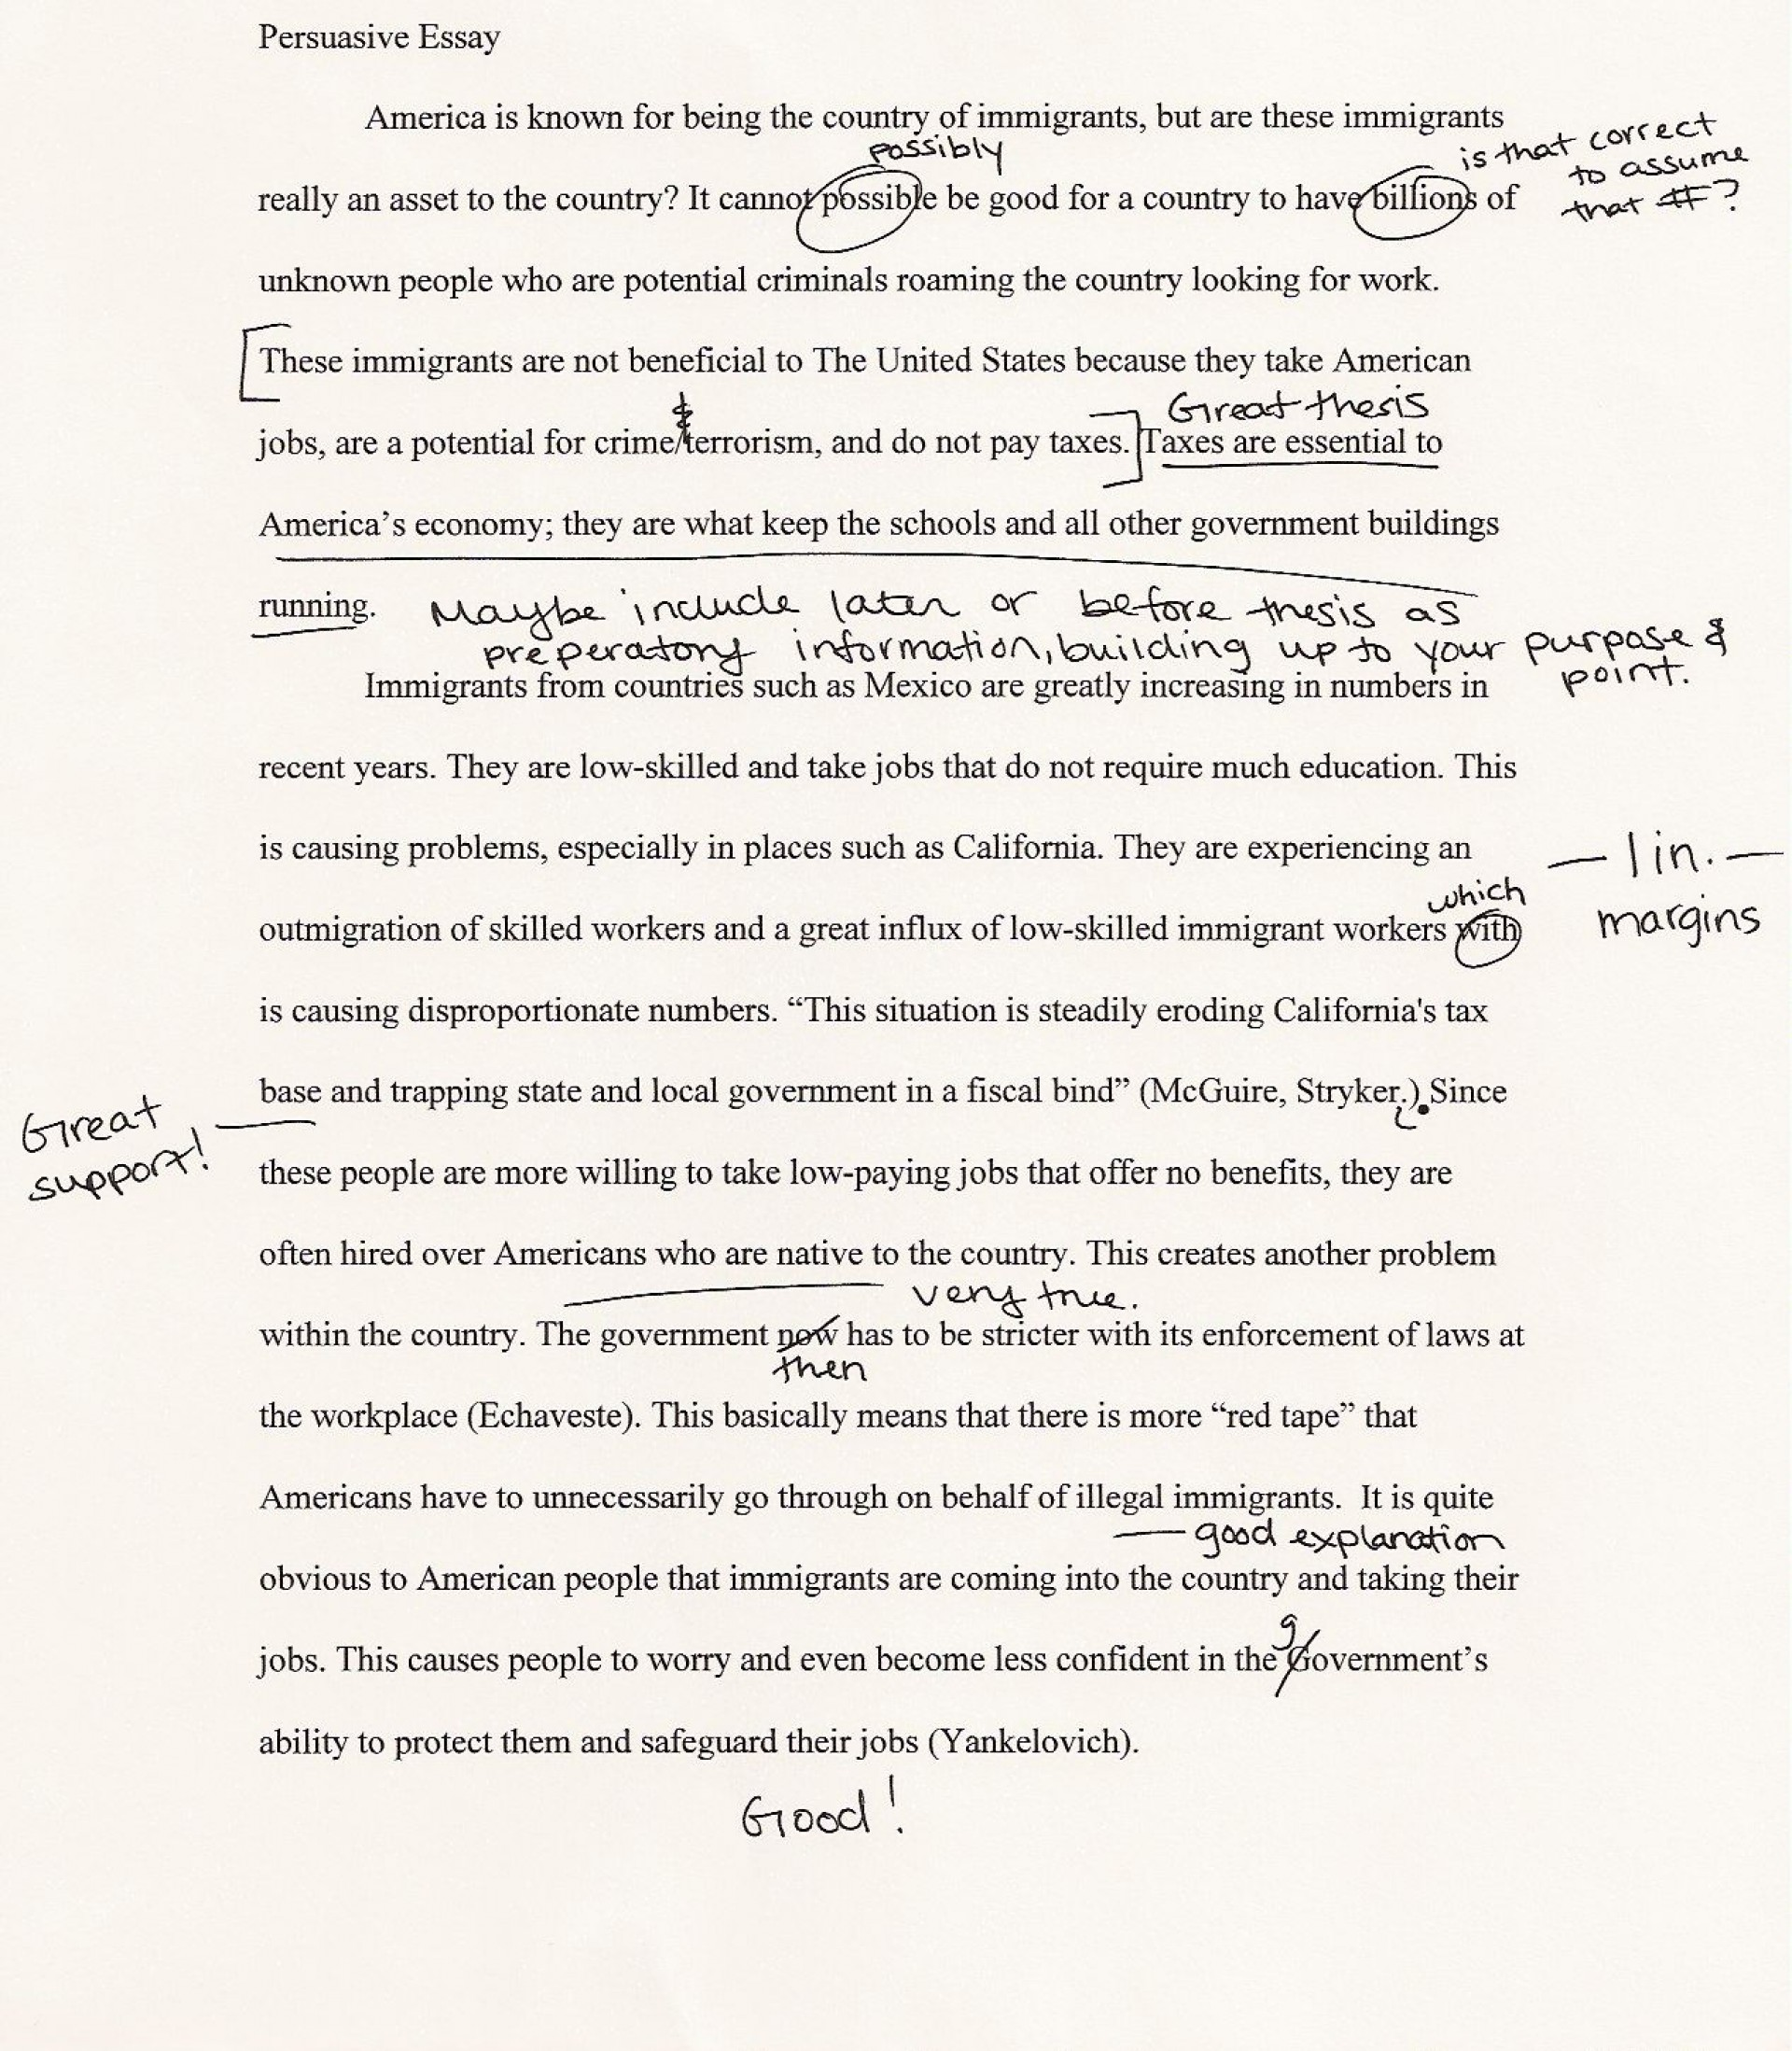 012 Research Paper Argumentative Topics Shocking College Level About Art 1920